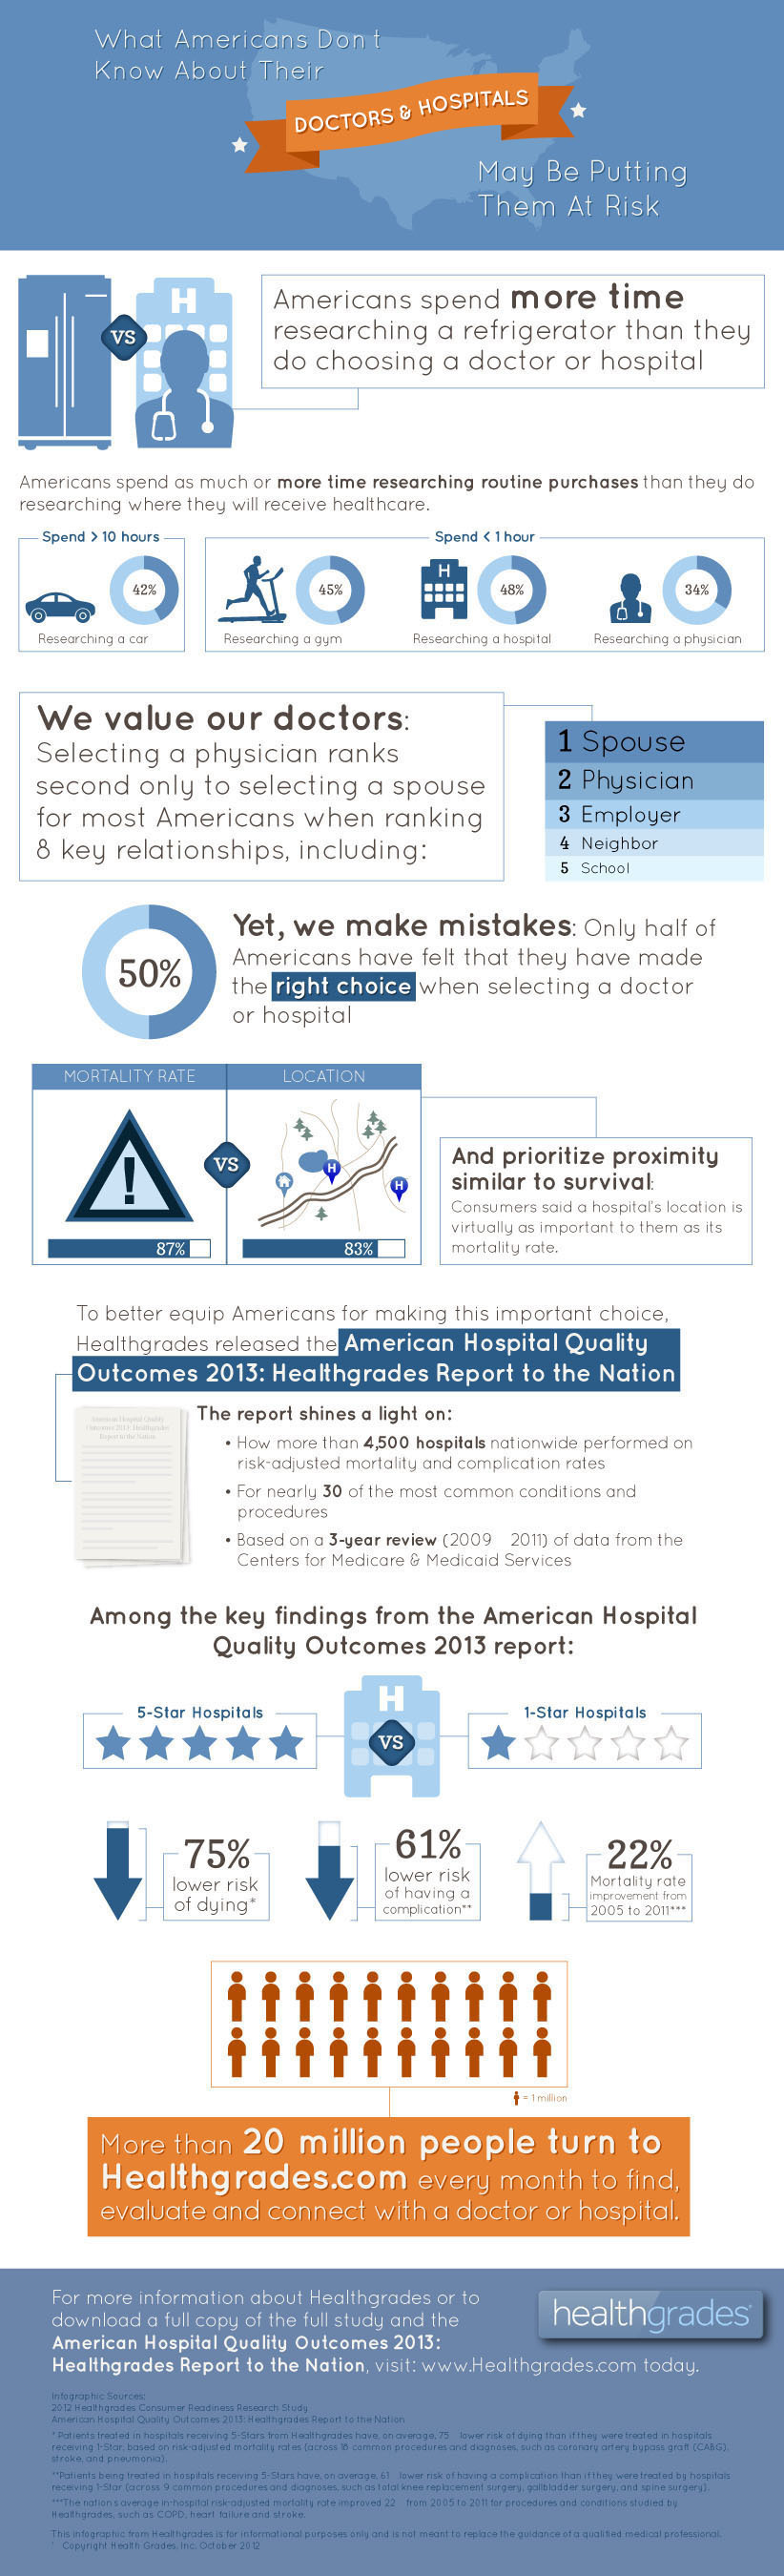 What Americans Don't Know About Their Doctors & Hospitals May Be Putting Them At Risk Source: Healthgrades.  (PRNewsFoto/Healthgrades)